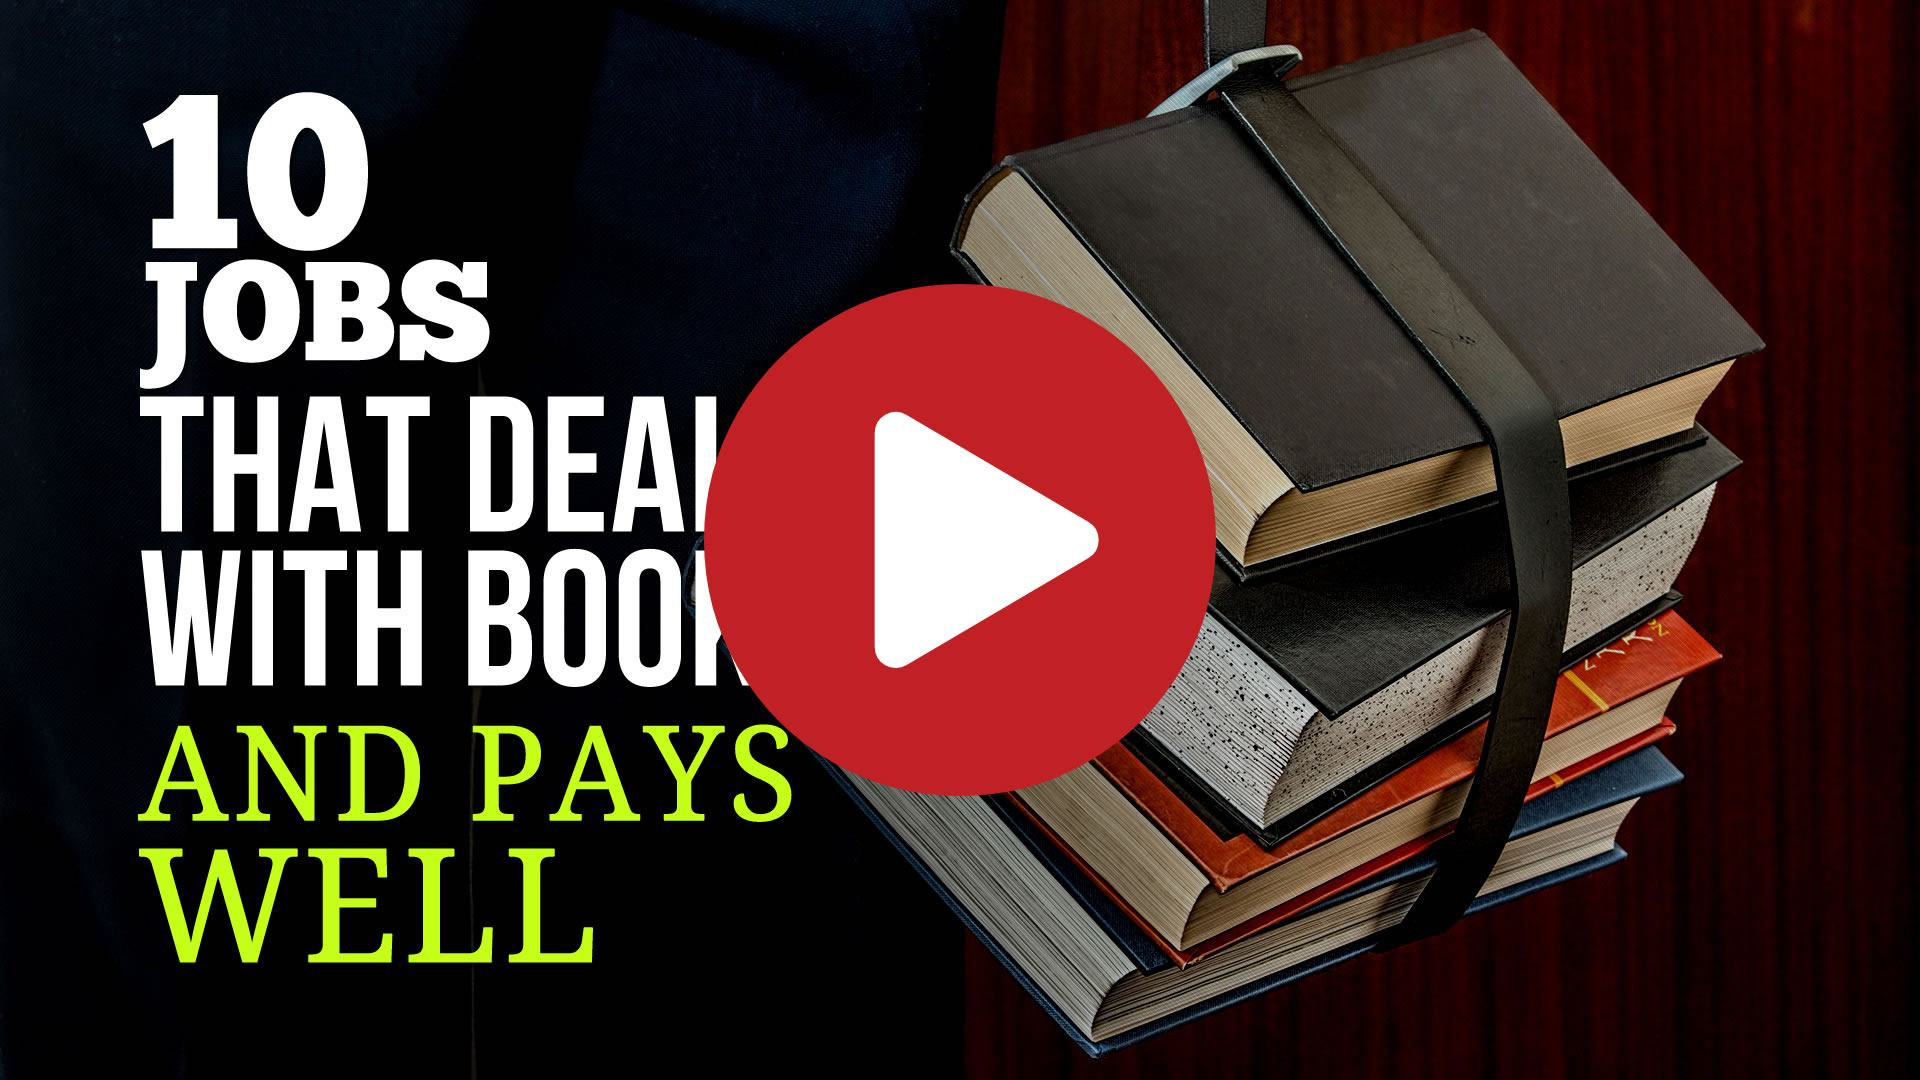 10 Jobs That Deals With Books and Pays Well